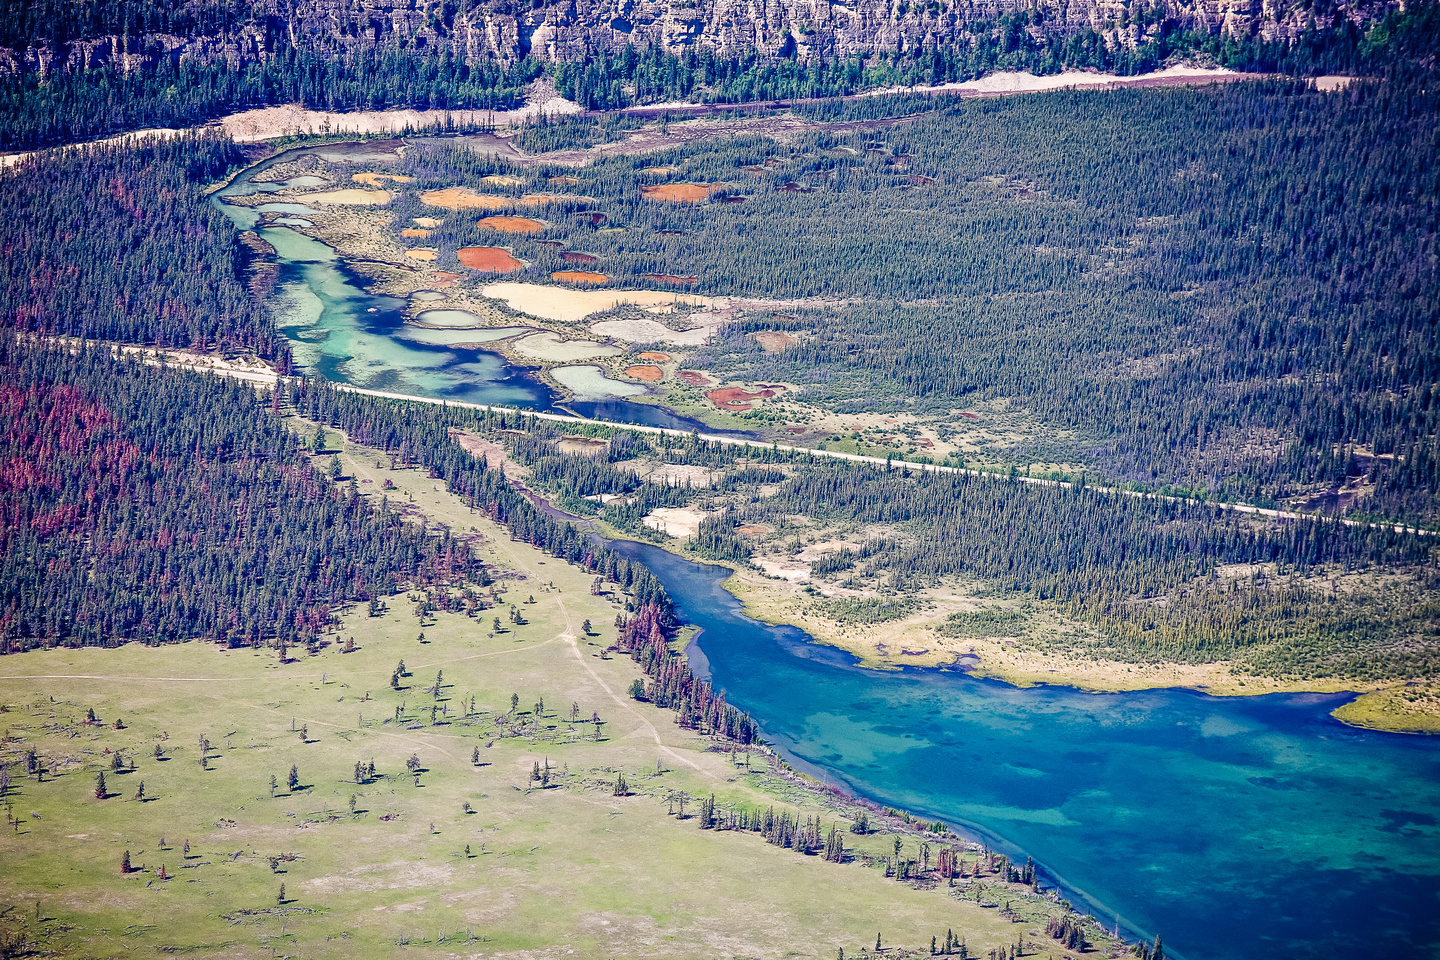 Incredible colors of the Palisade Tarns across the Athabasca River.